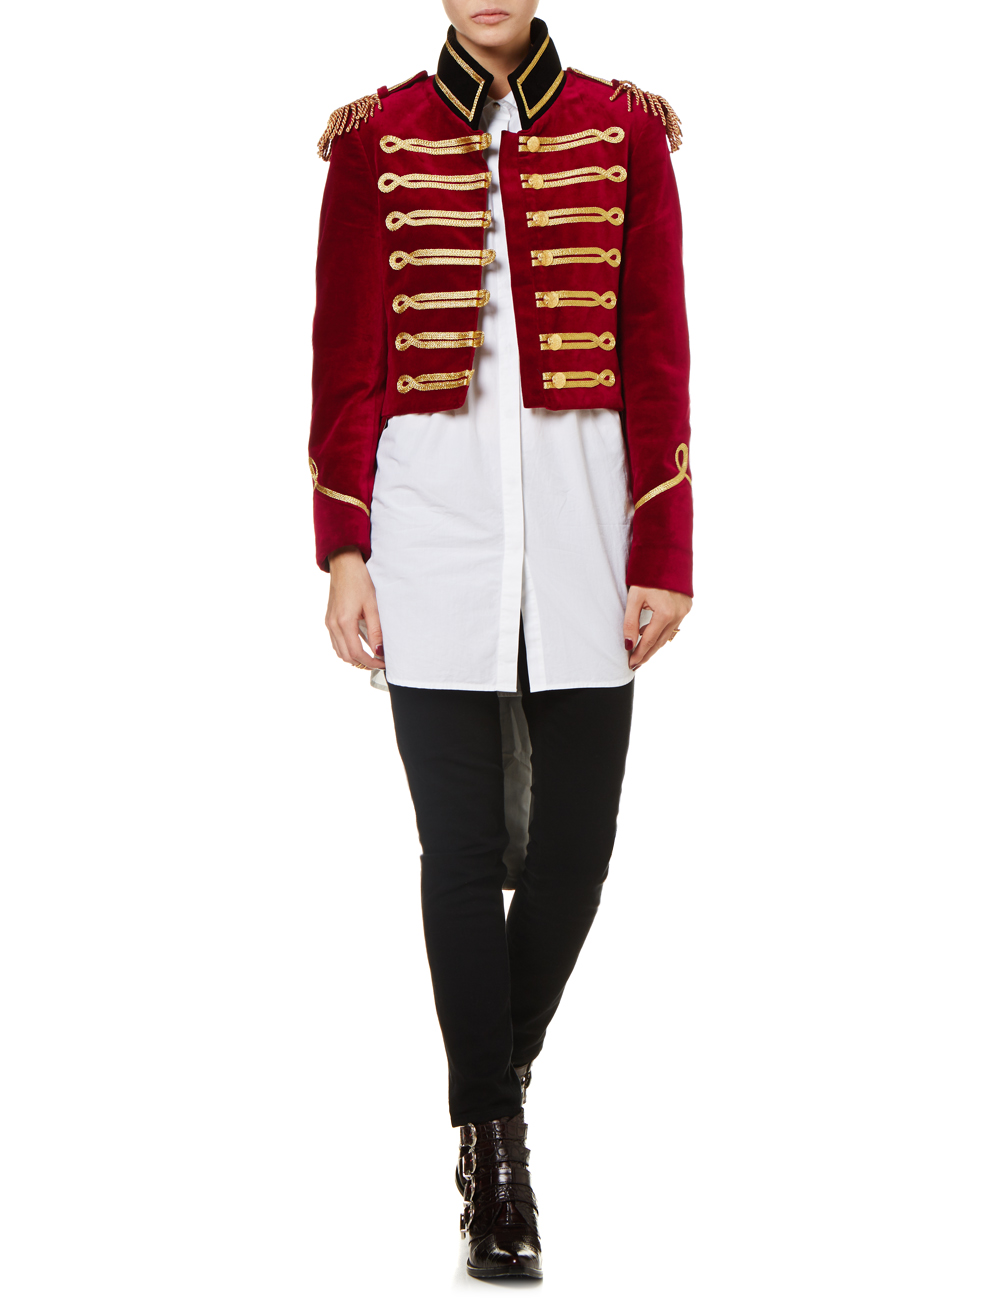 Avenue 32 persian red tailcoat.jpg